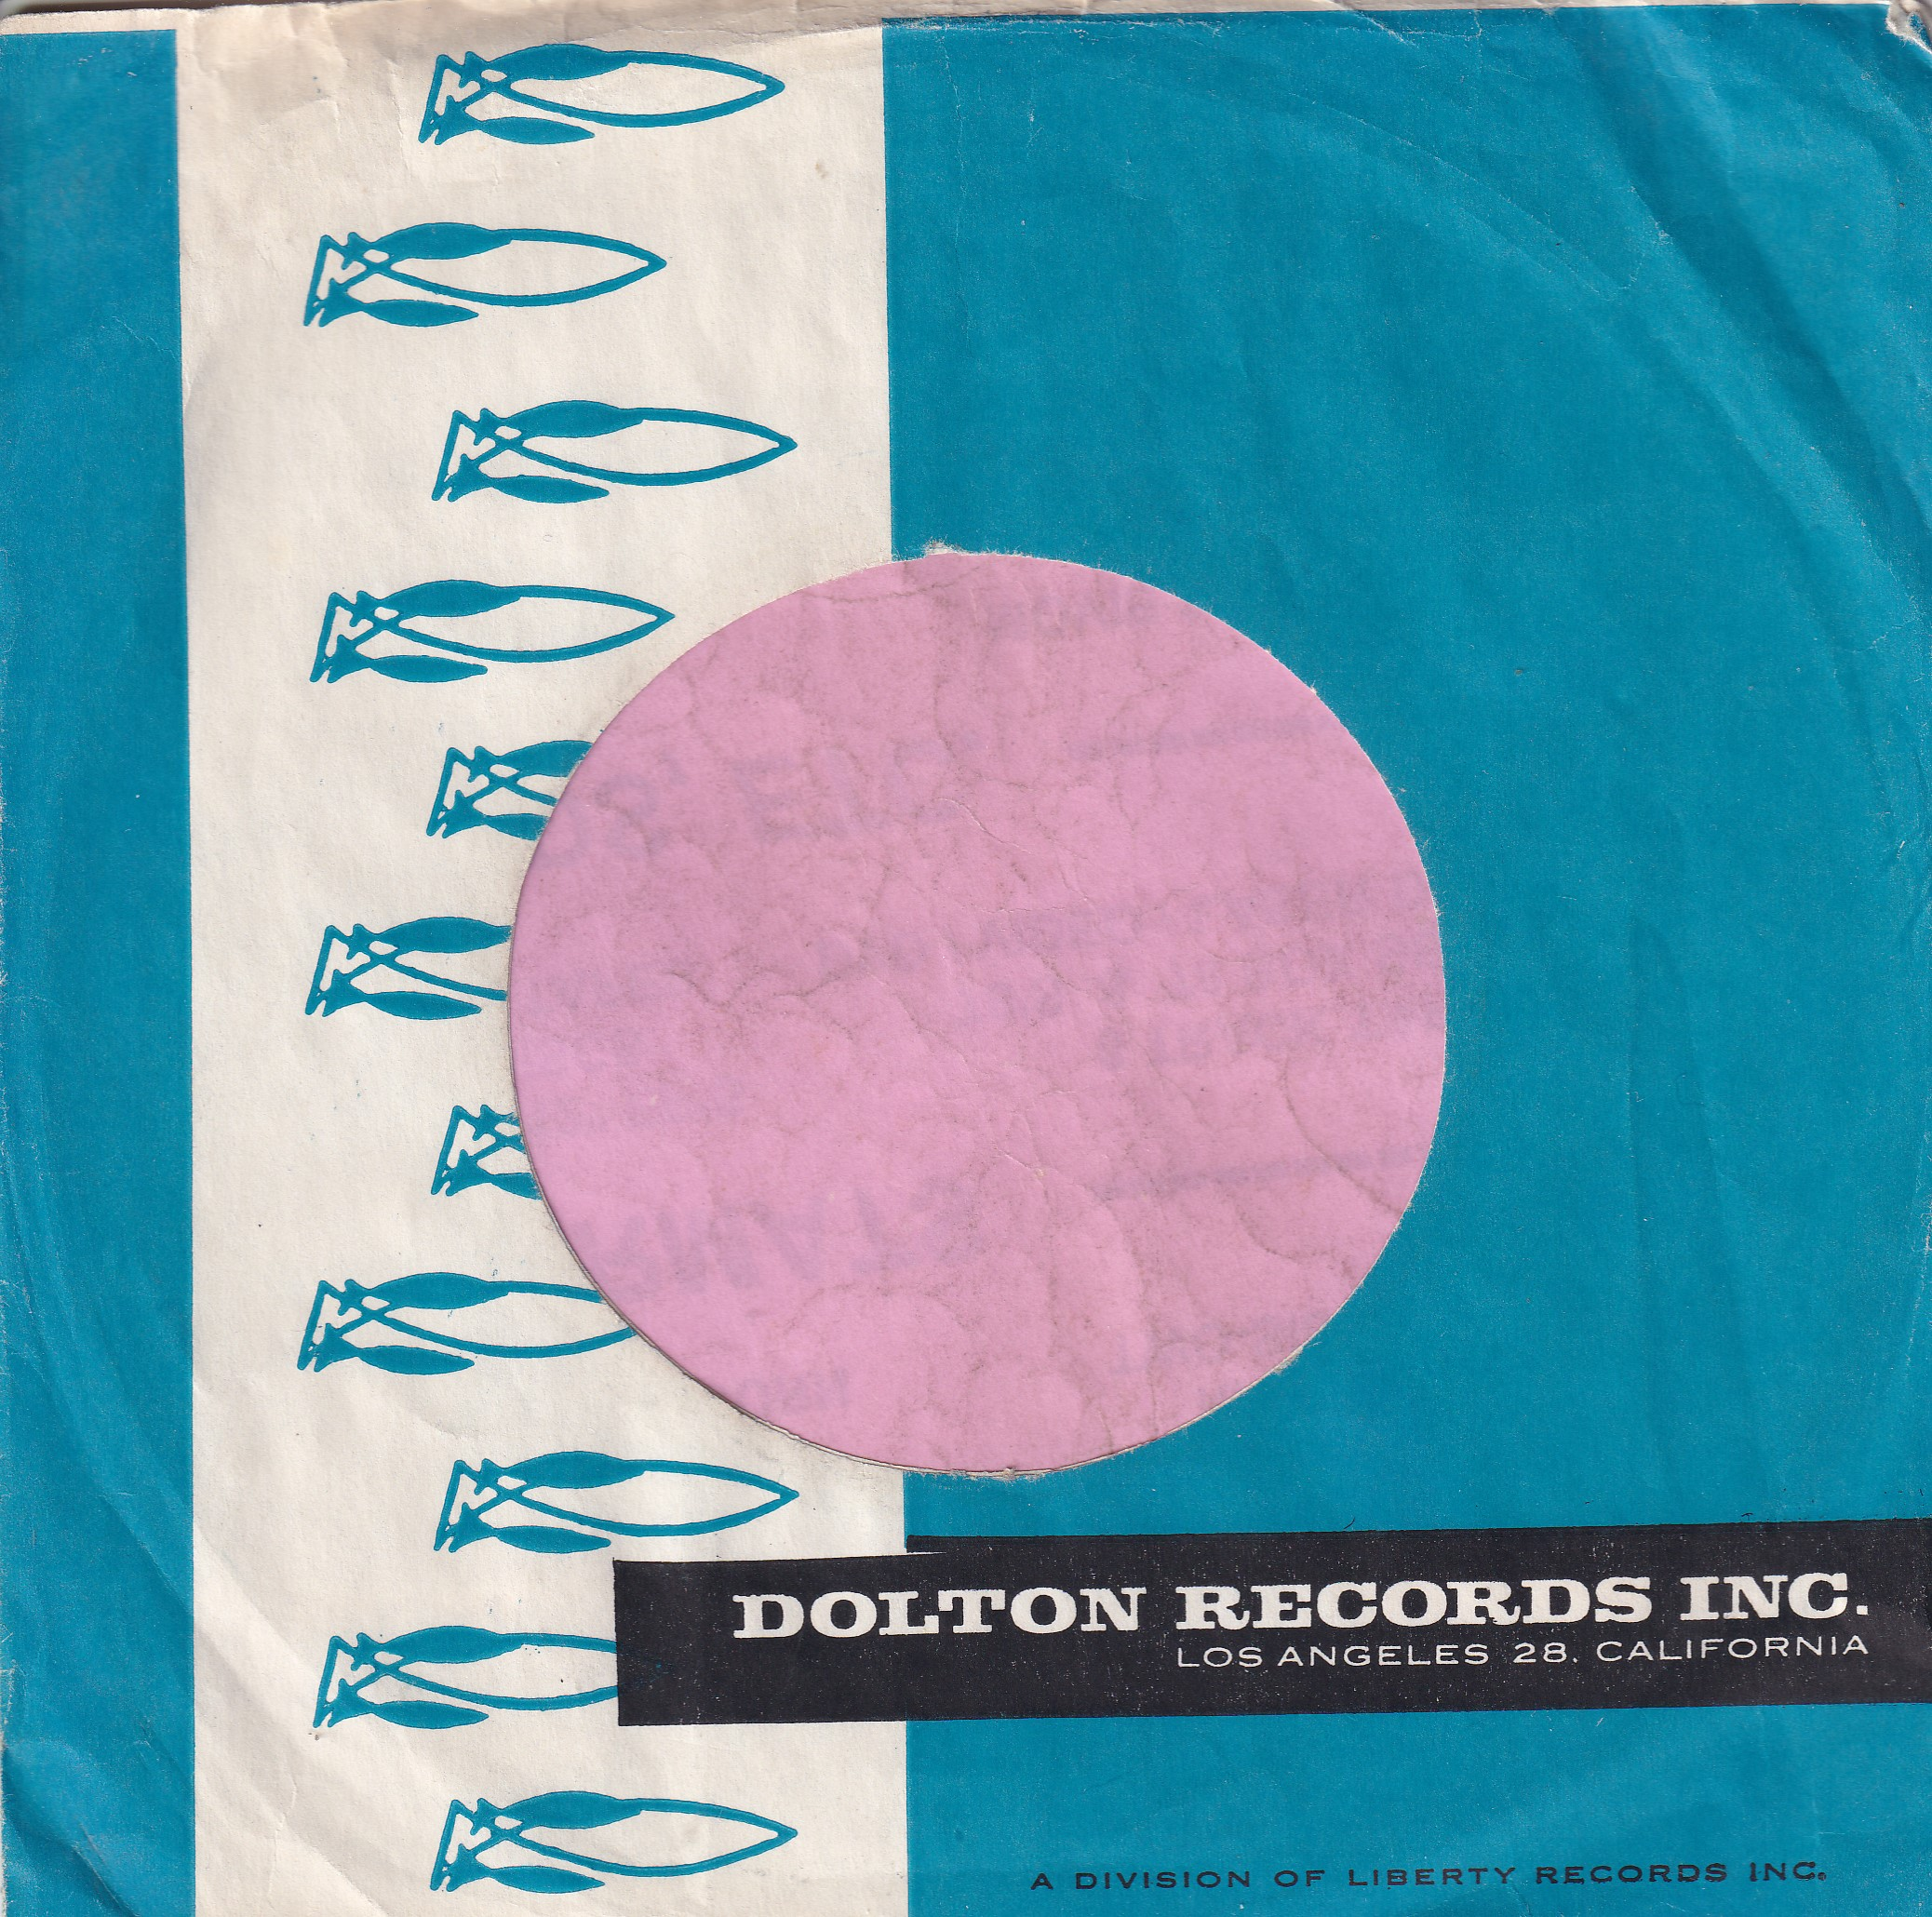 Dolton Records U.S.A. Company Sleeve 1962 – 1965